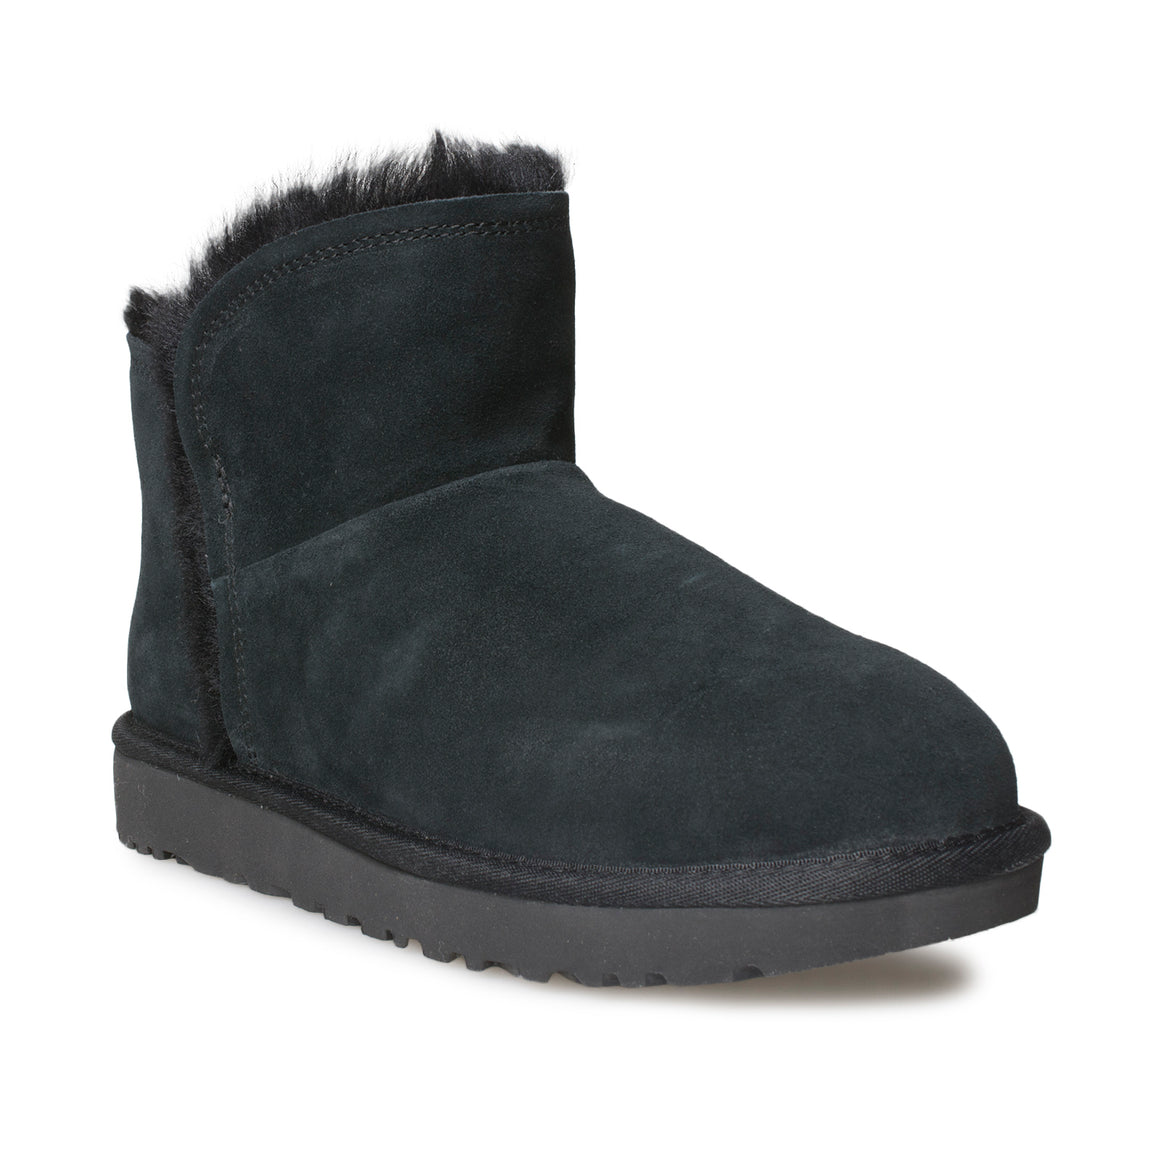 UGG Classic Mini Fluff High Low Black Boots - Women's